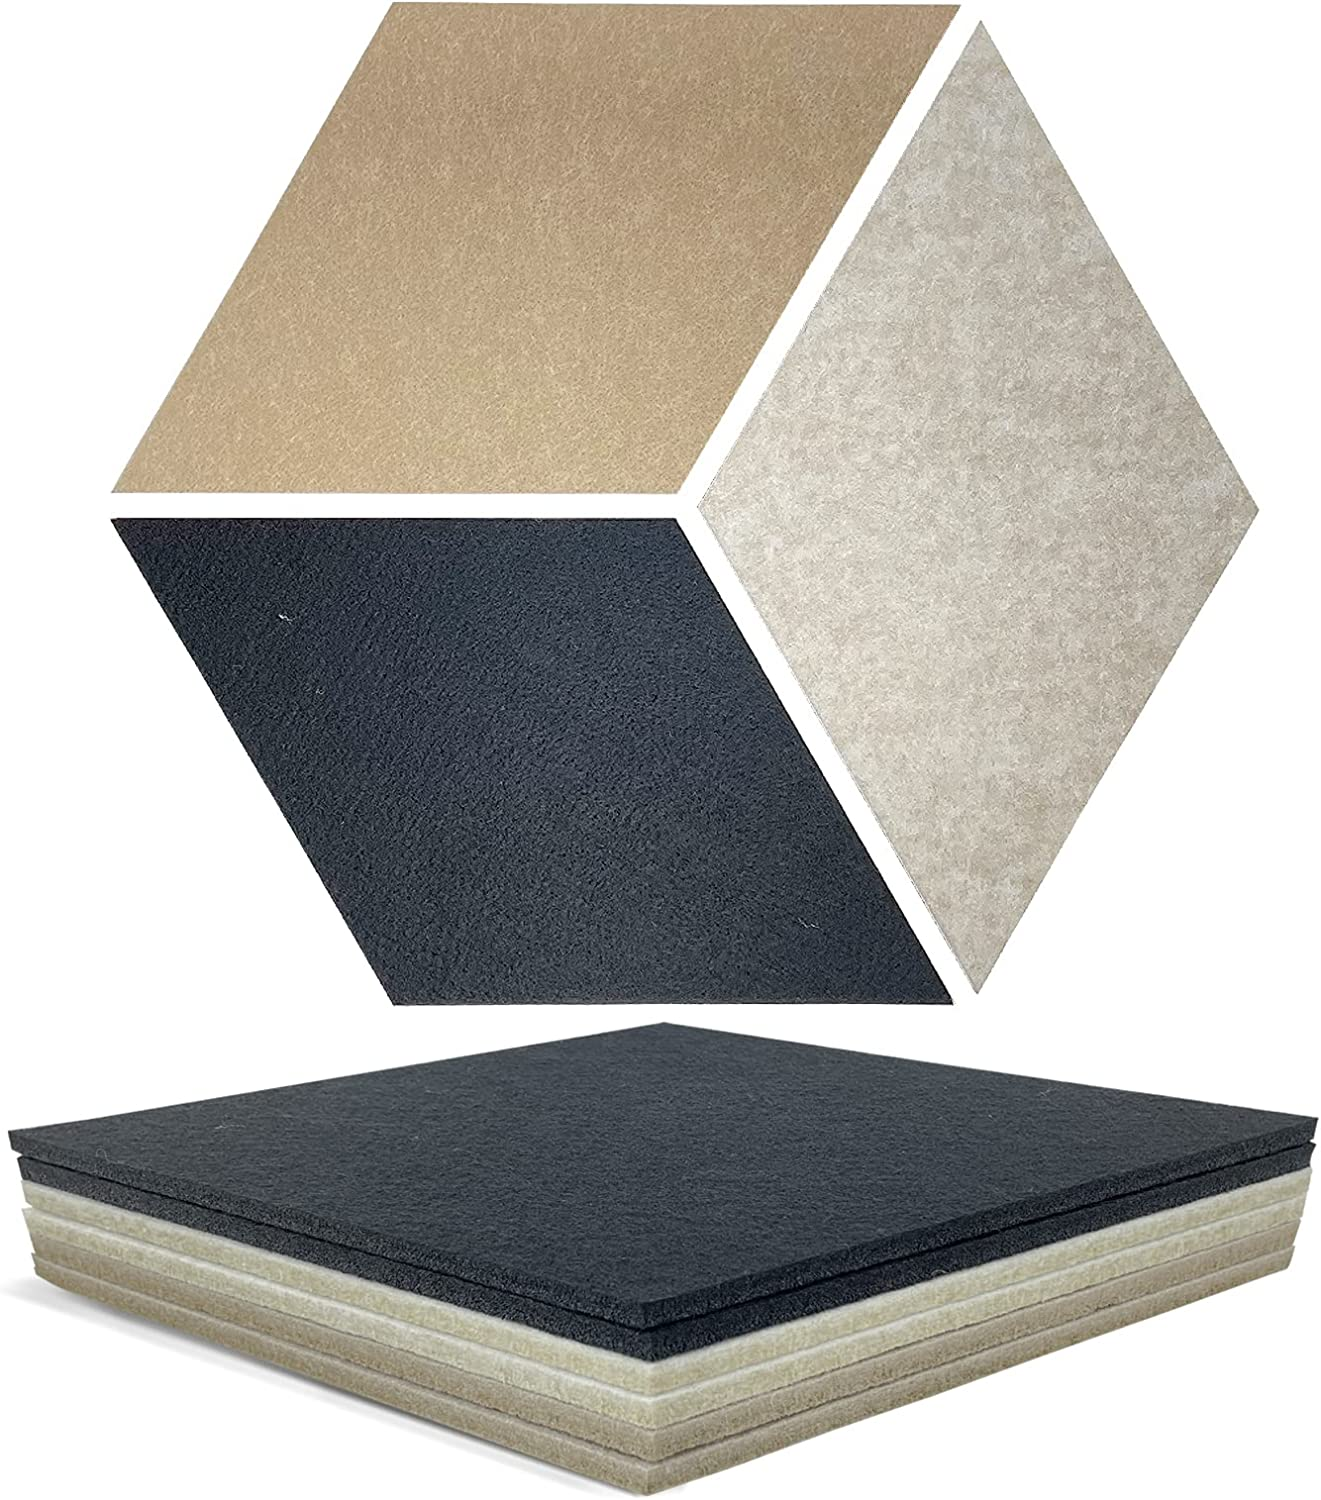 Sound Absorbing Panel Acoustical Wall Decorative Padding Felt 17 Outlet sale feature Beauty products